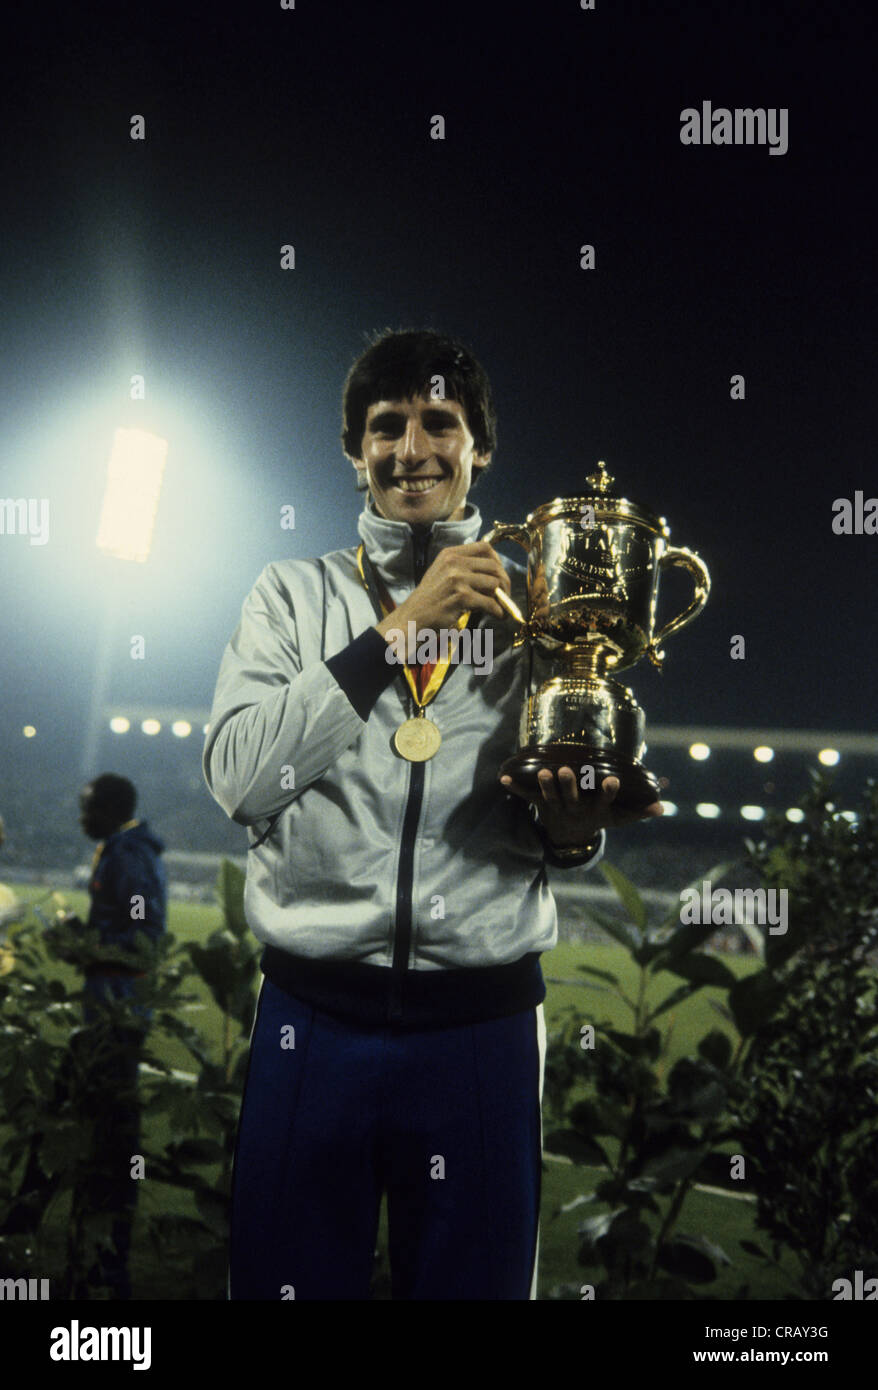 Seb Coe after breaking the world record in the mile in 3:47.33 in the 1981 Golden Mile, Brussels - Stock Image